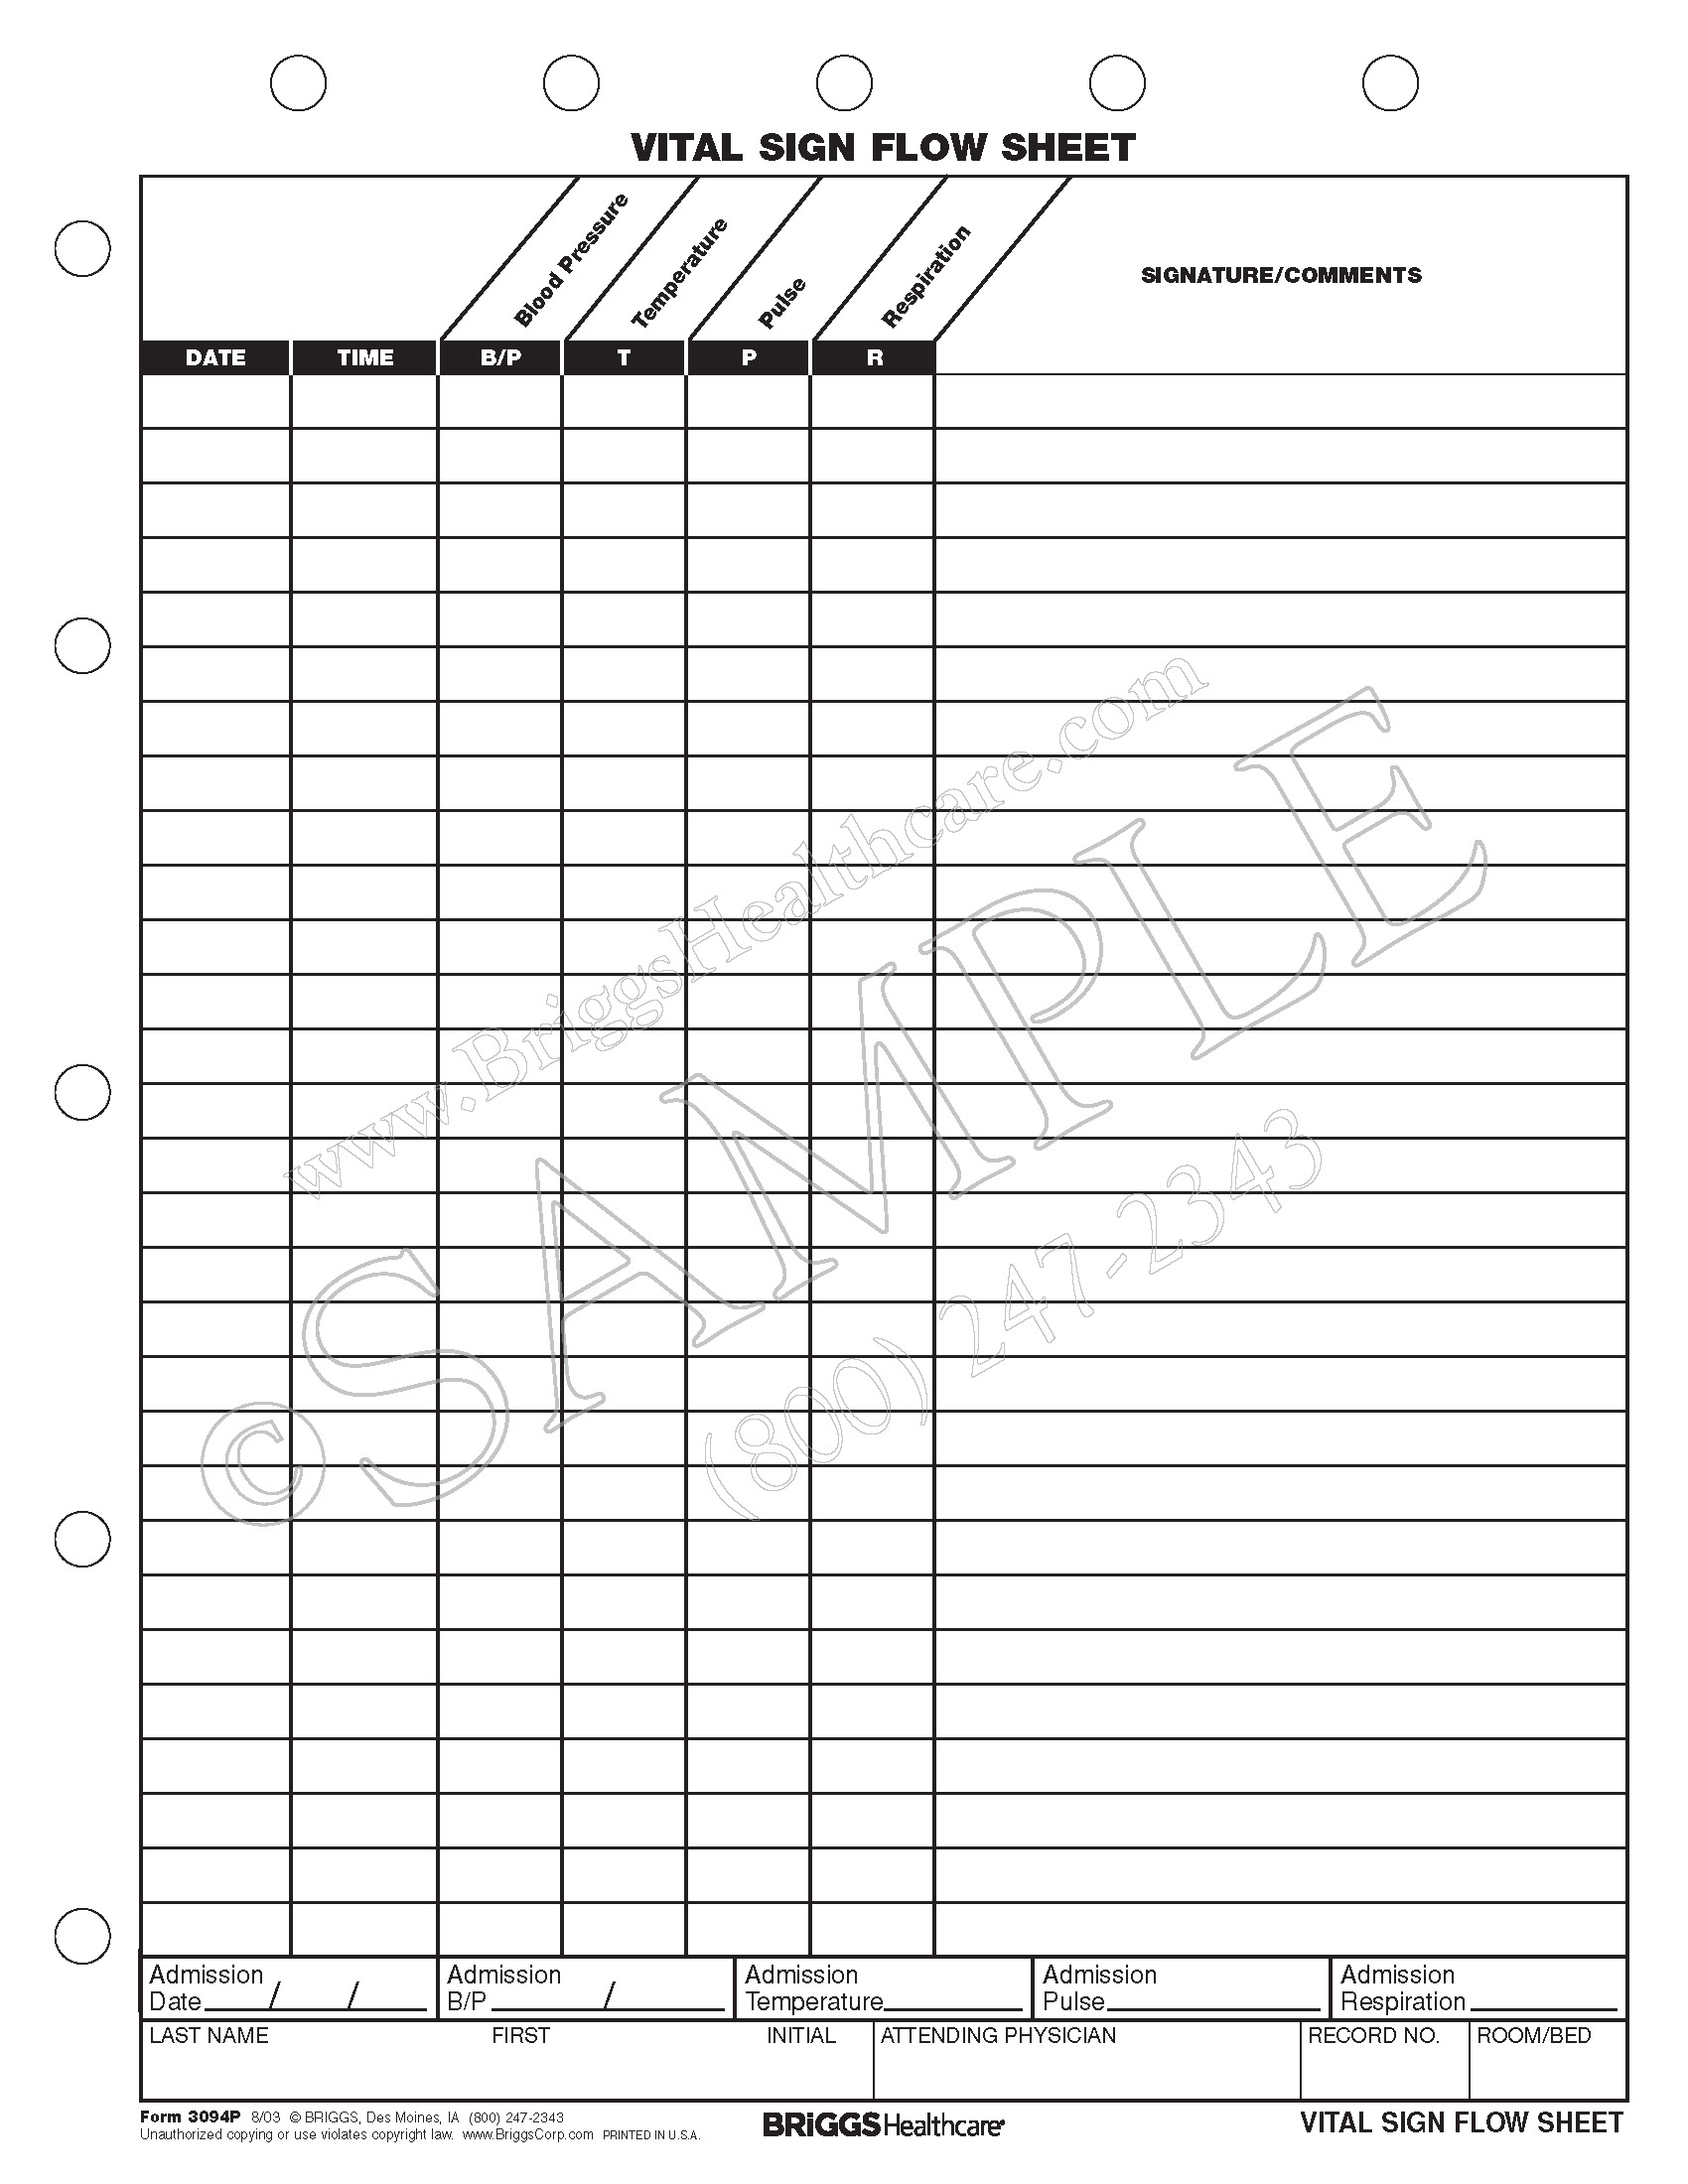 Cna Assignment Sheet Template - Karis.sticken.co | Printable Cna Worksheets